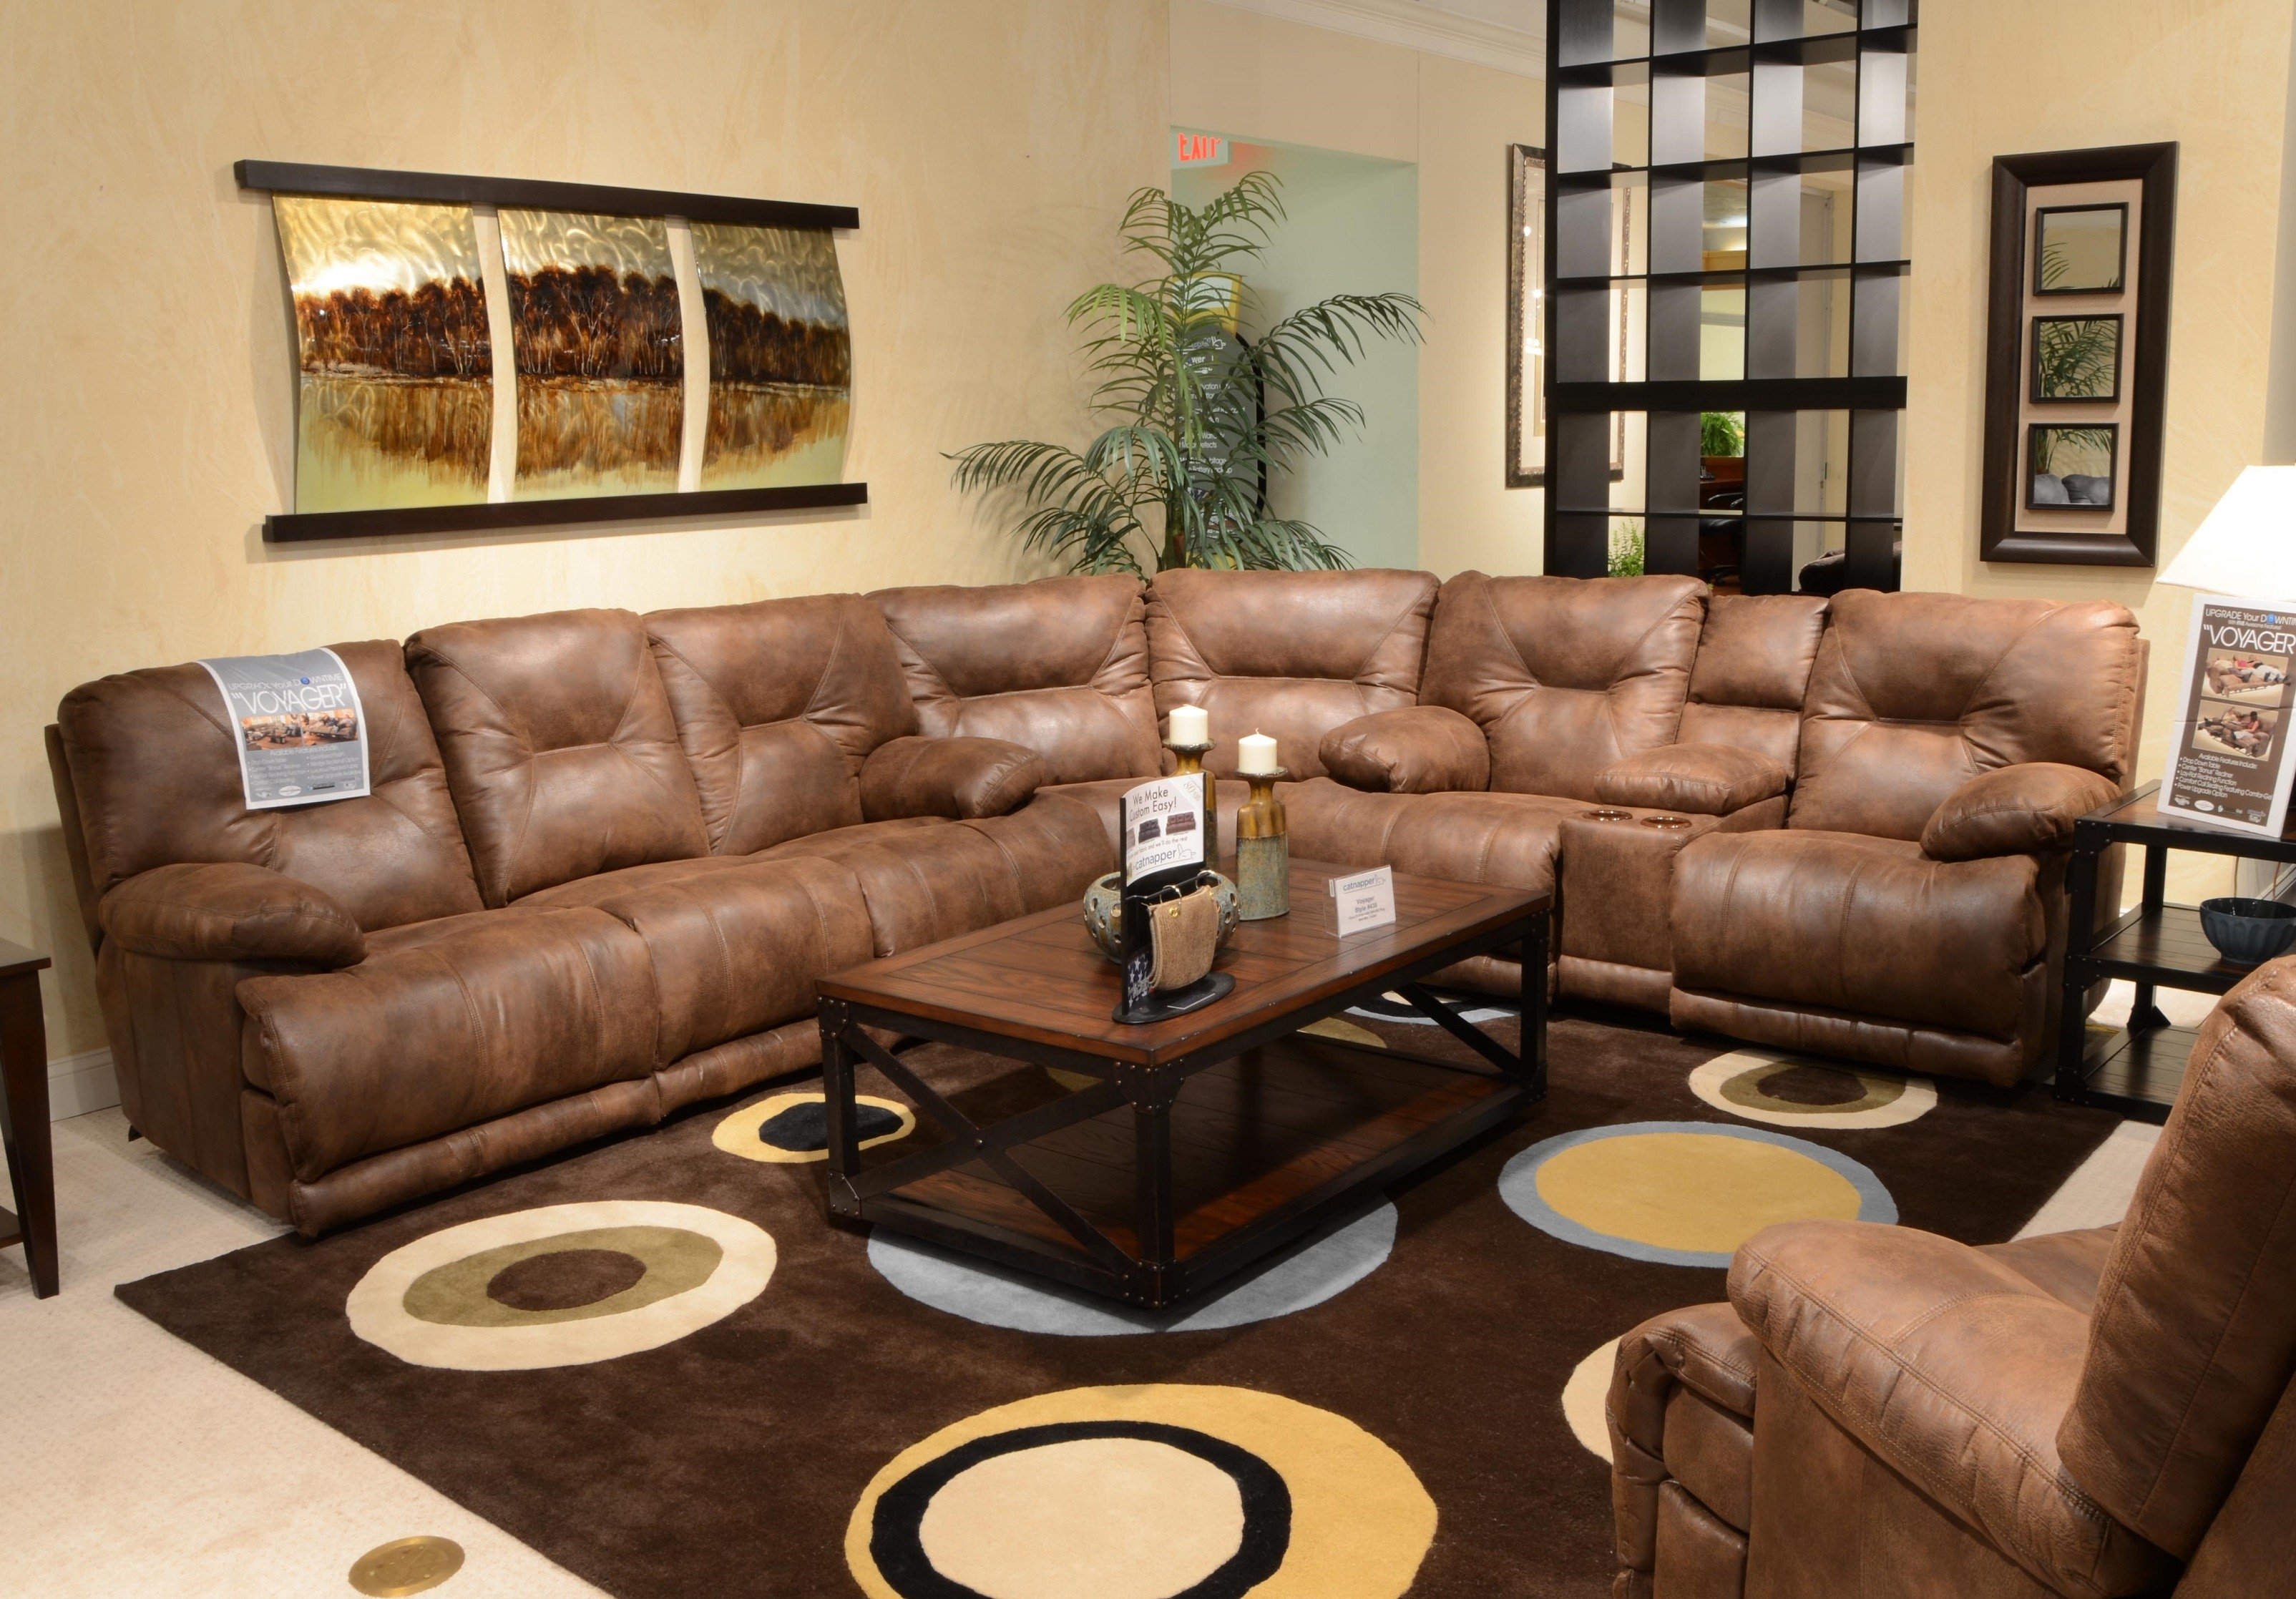 Best Sectional Sofa For Living Room Design Home Design With Comfy Sectional Sofa (Image 4 of 15)